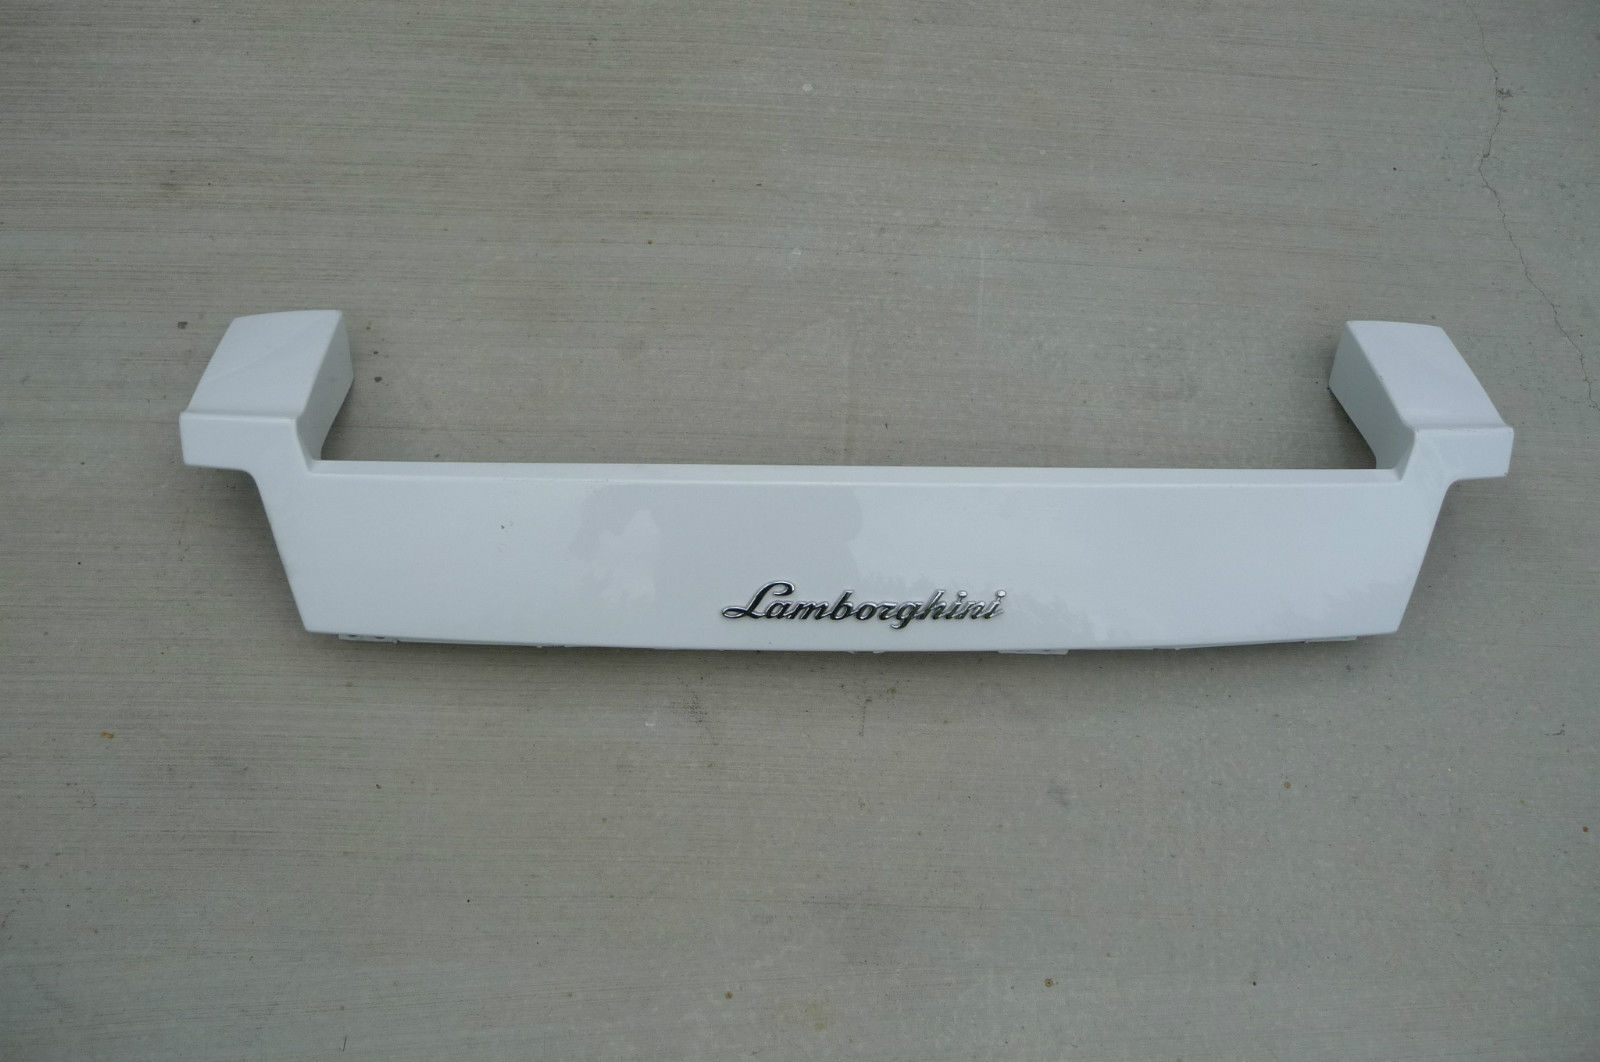 Lamborghini Gallardo Spyder Spider Rear End Panel upper 407864487 - Used Auto Parts Store | LA Global Parts